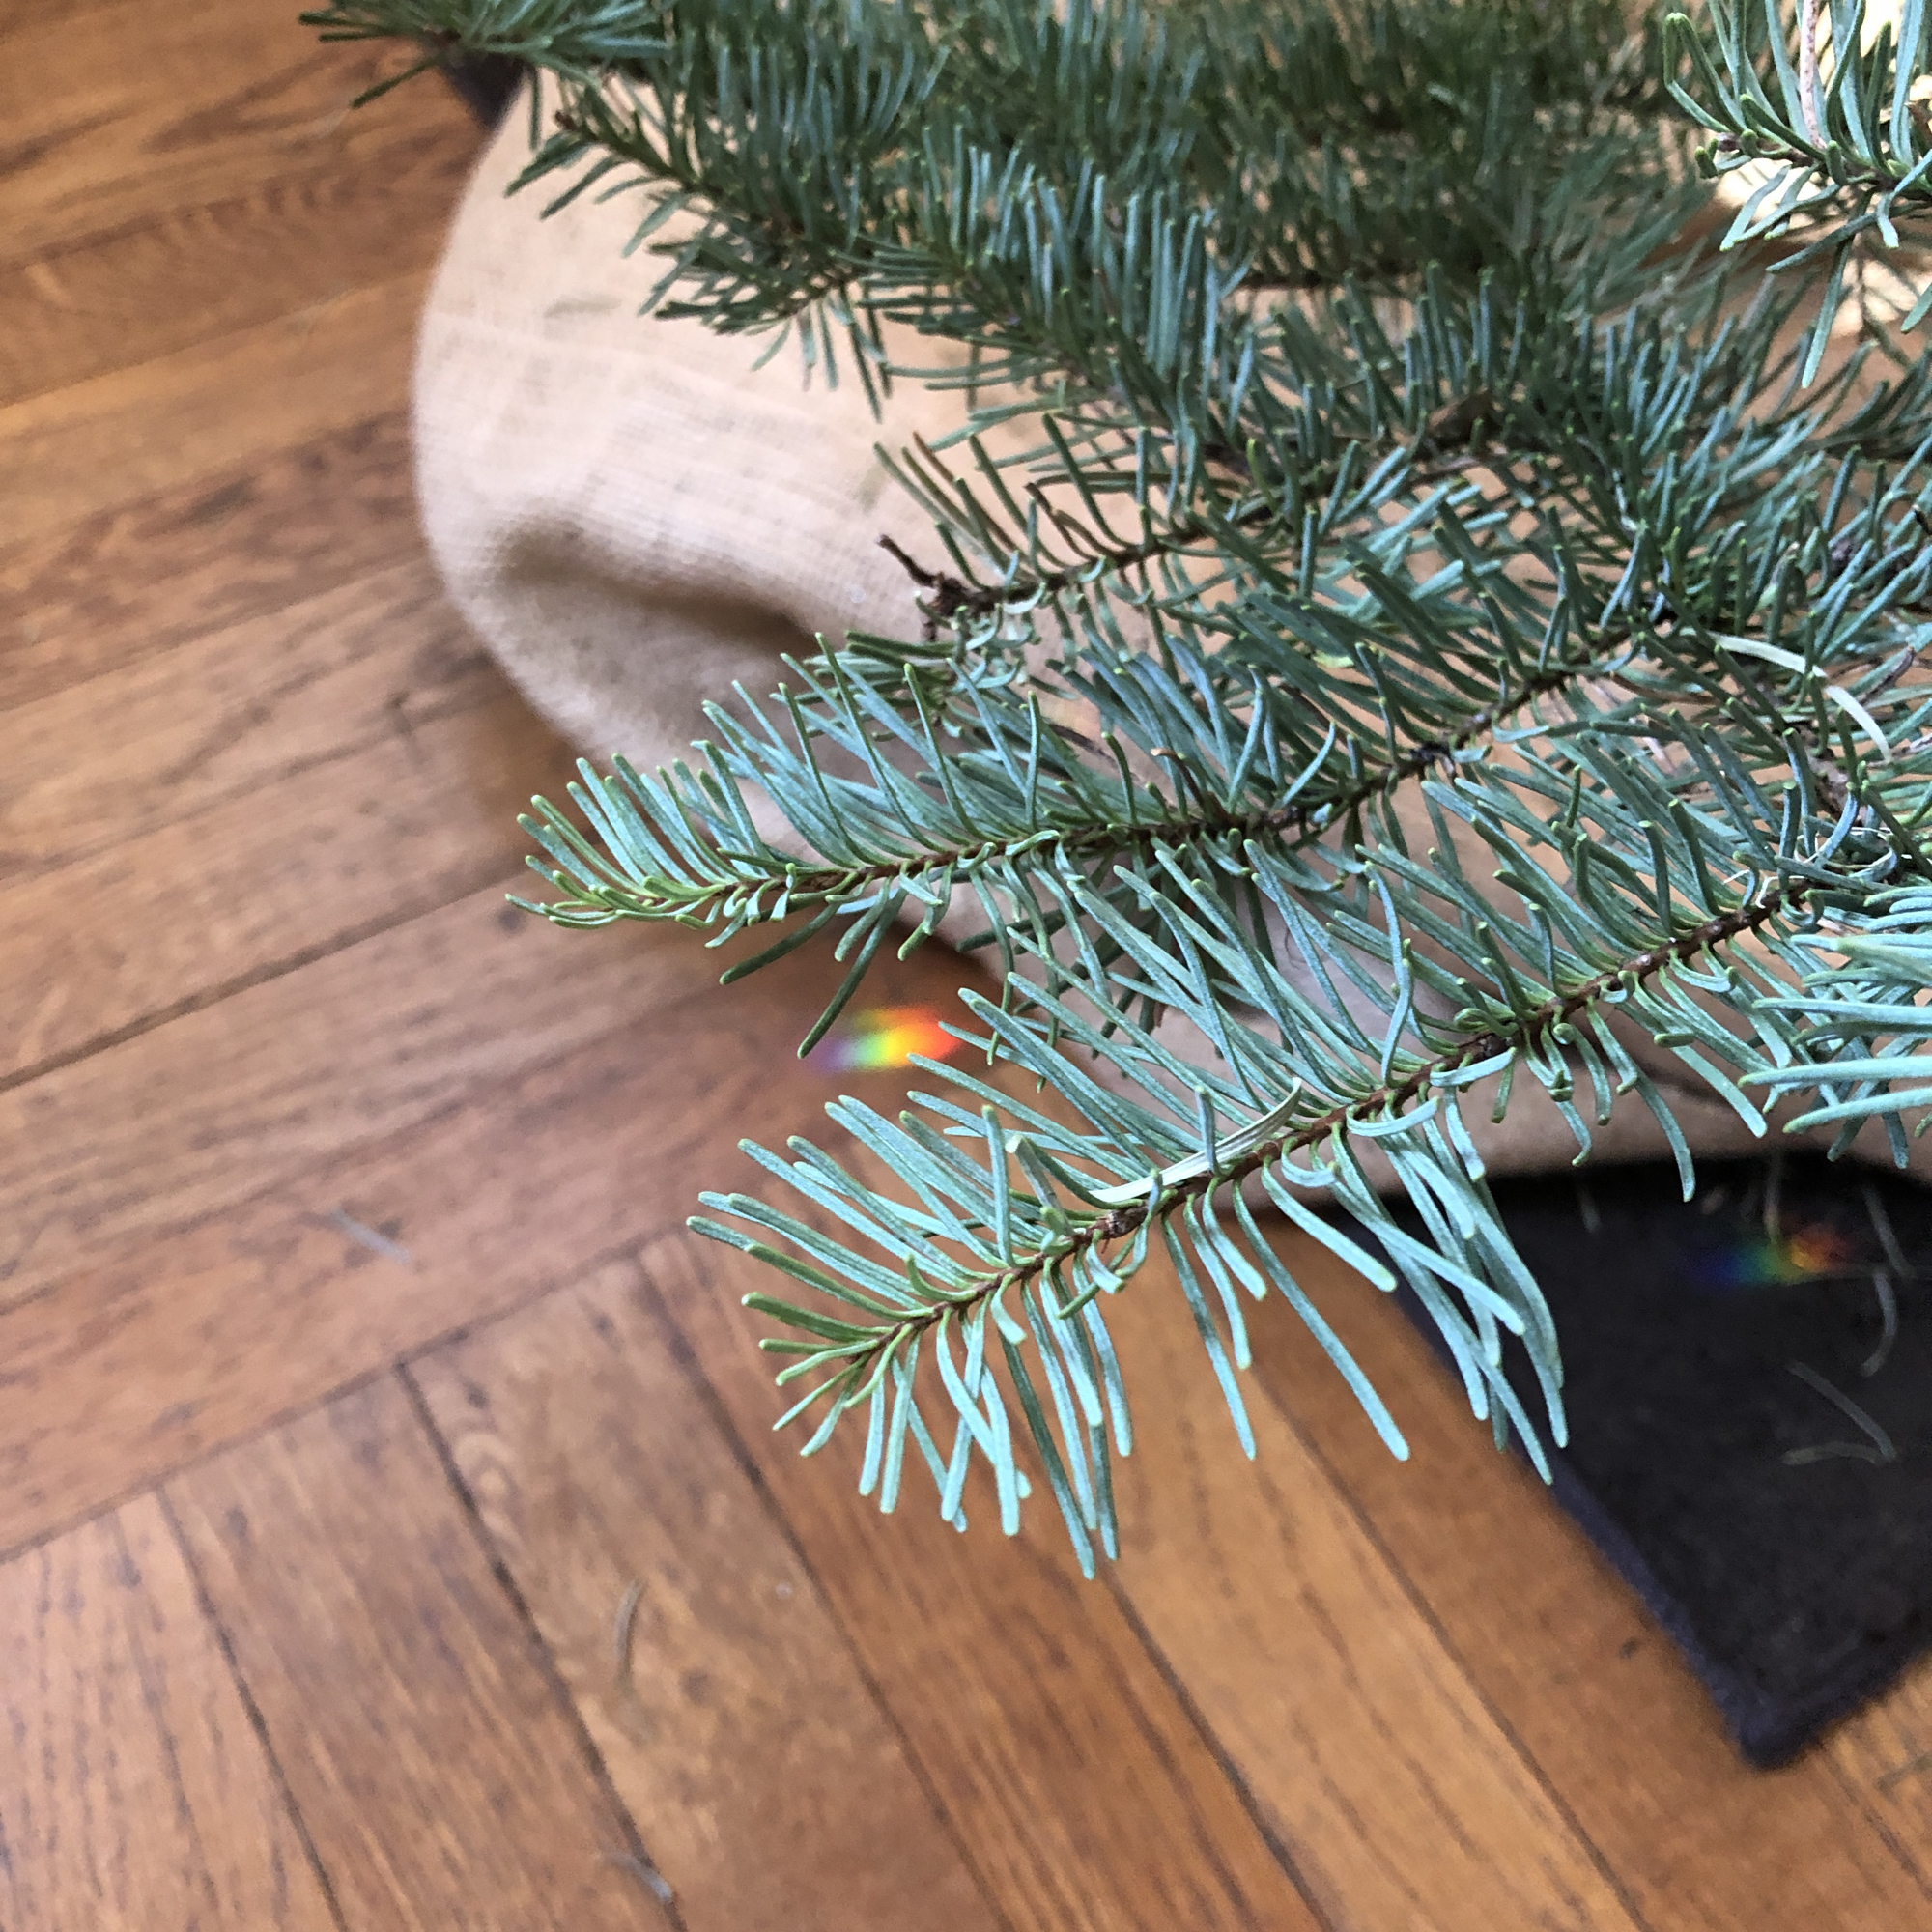 Along with a couple of unicorns, unexpected rainbows found beneath my Christmas Tree